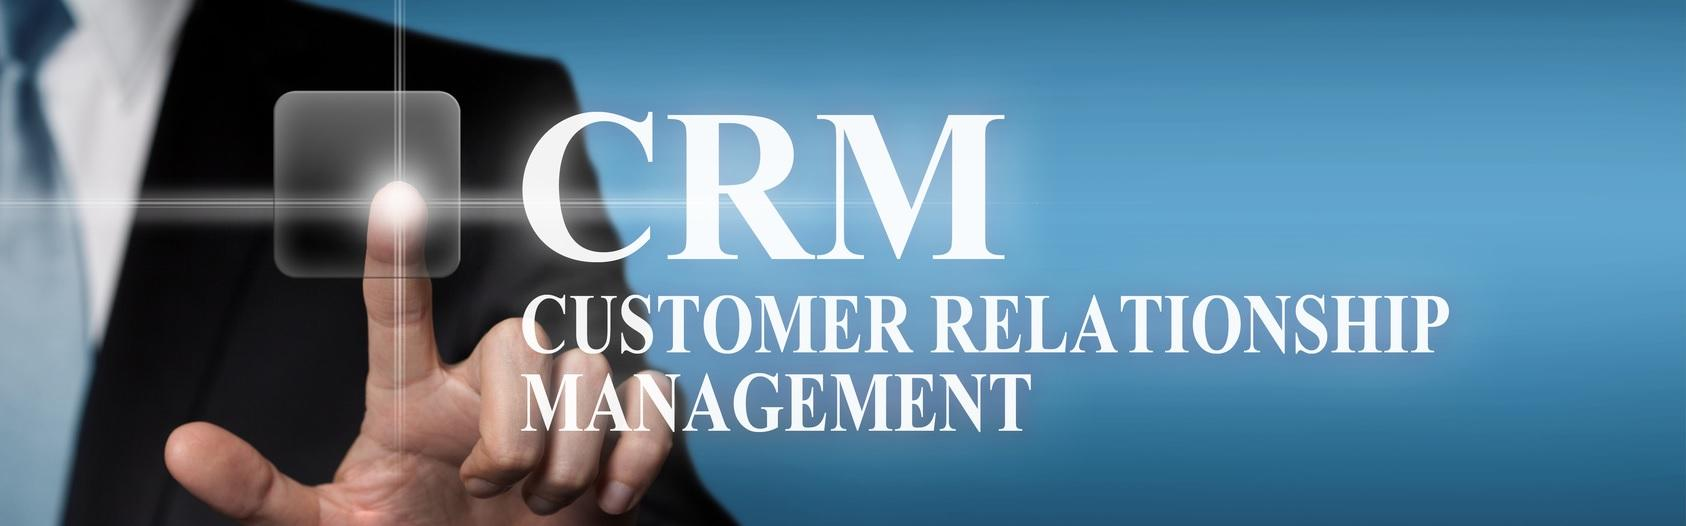 relationship customer Customer relationship management (crm) and sales pipeline management software to organize, track, and manage your sales pipeline, deals, leads, and contacts 14 day free trial for your sales force.